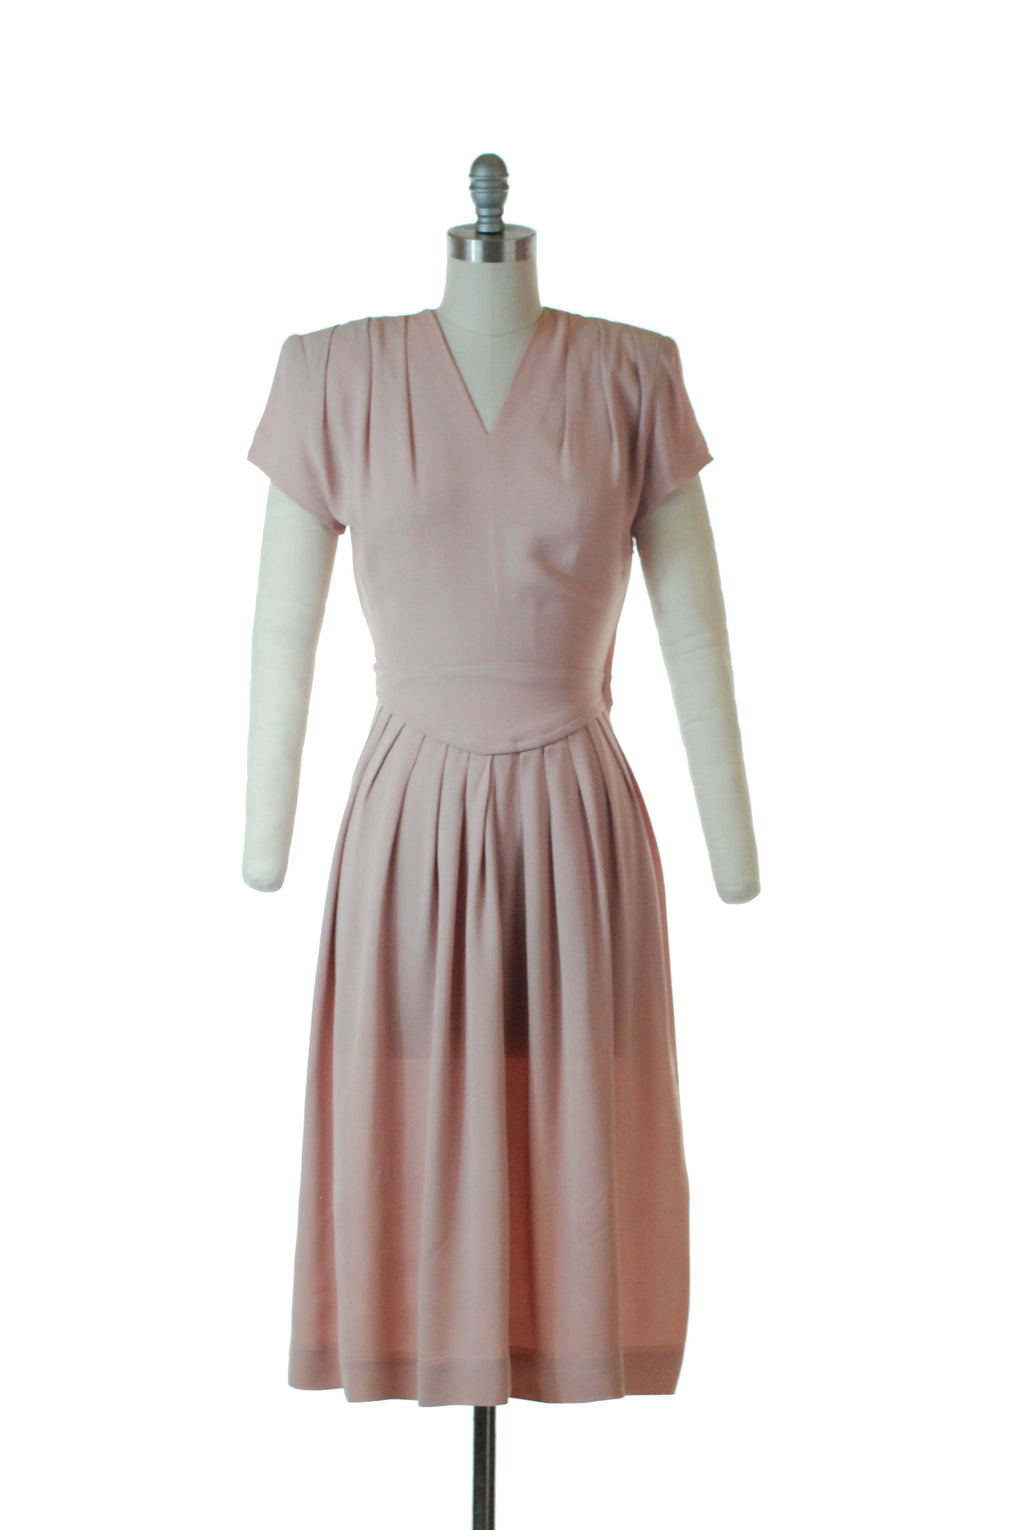 Sweet 1940s Pink Rayon Dress with Pleated Skirt by Carlye